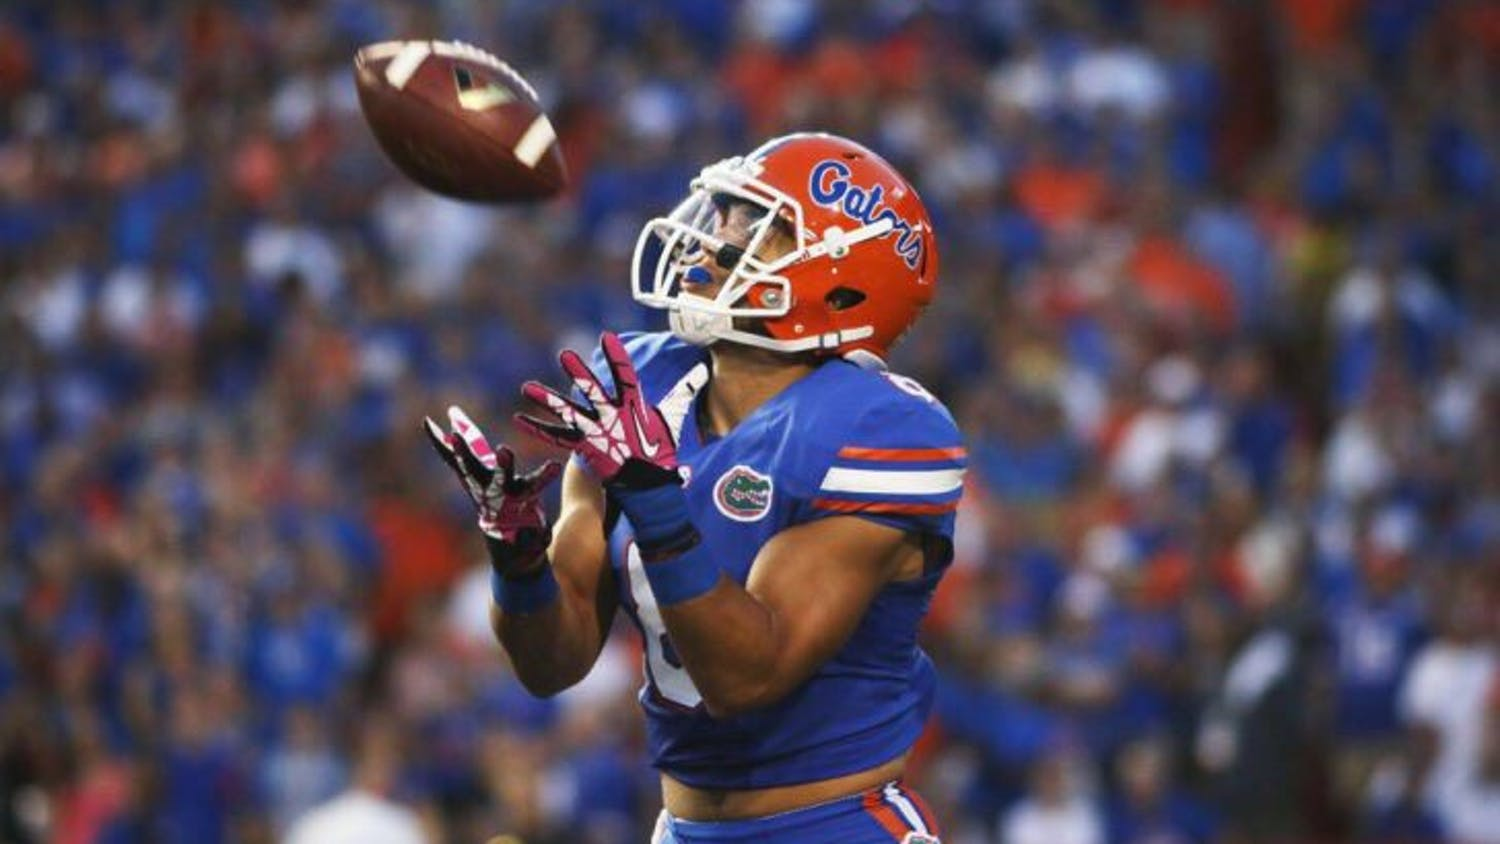 Trey Burton played in every game of the season, racking up 54 receptions for 569 yards and six touchdowns.